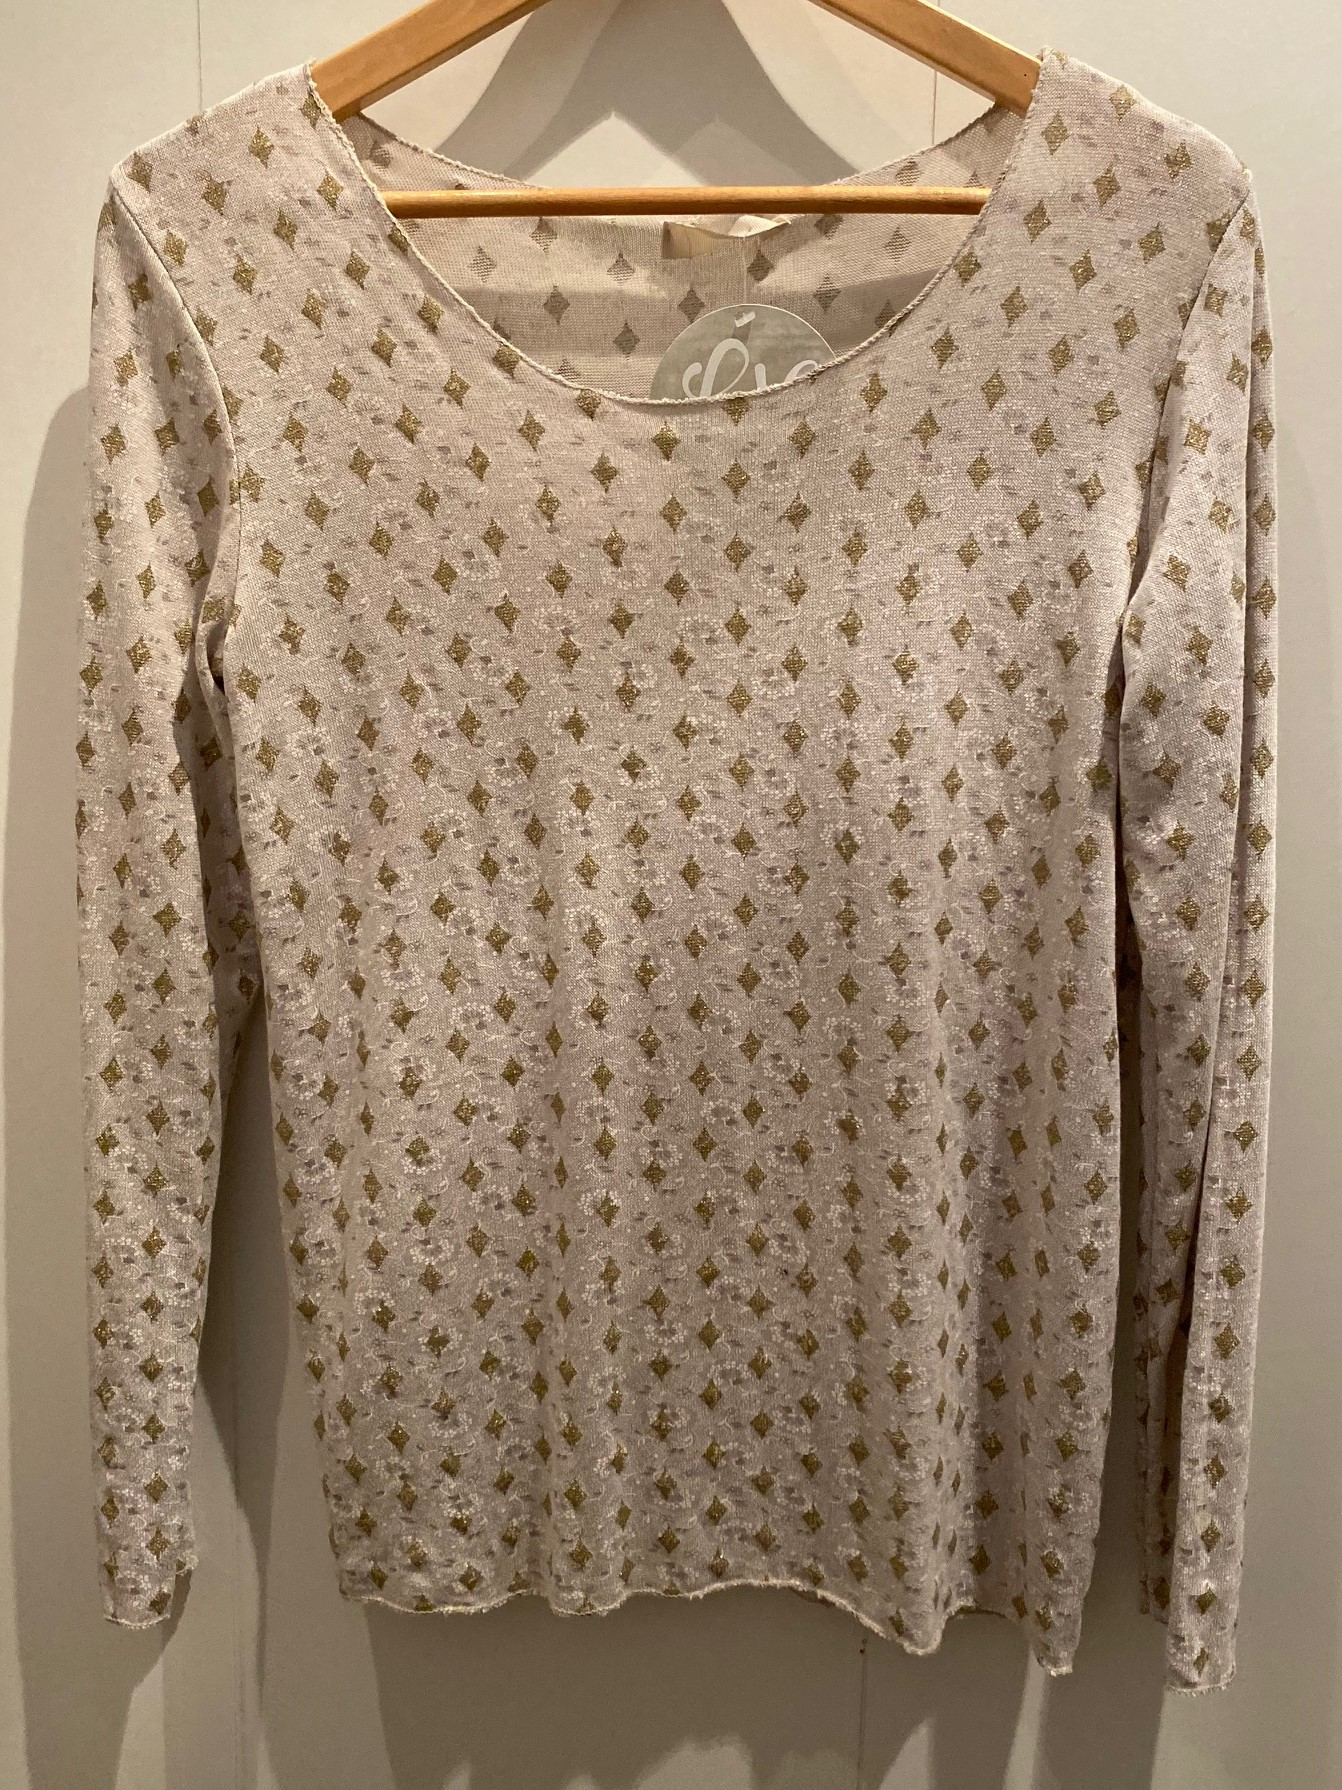 Diamond print light weight knitted top